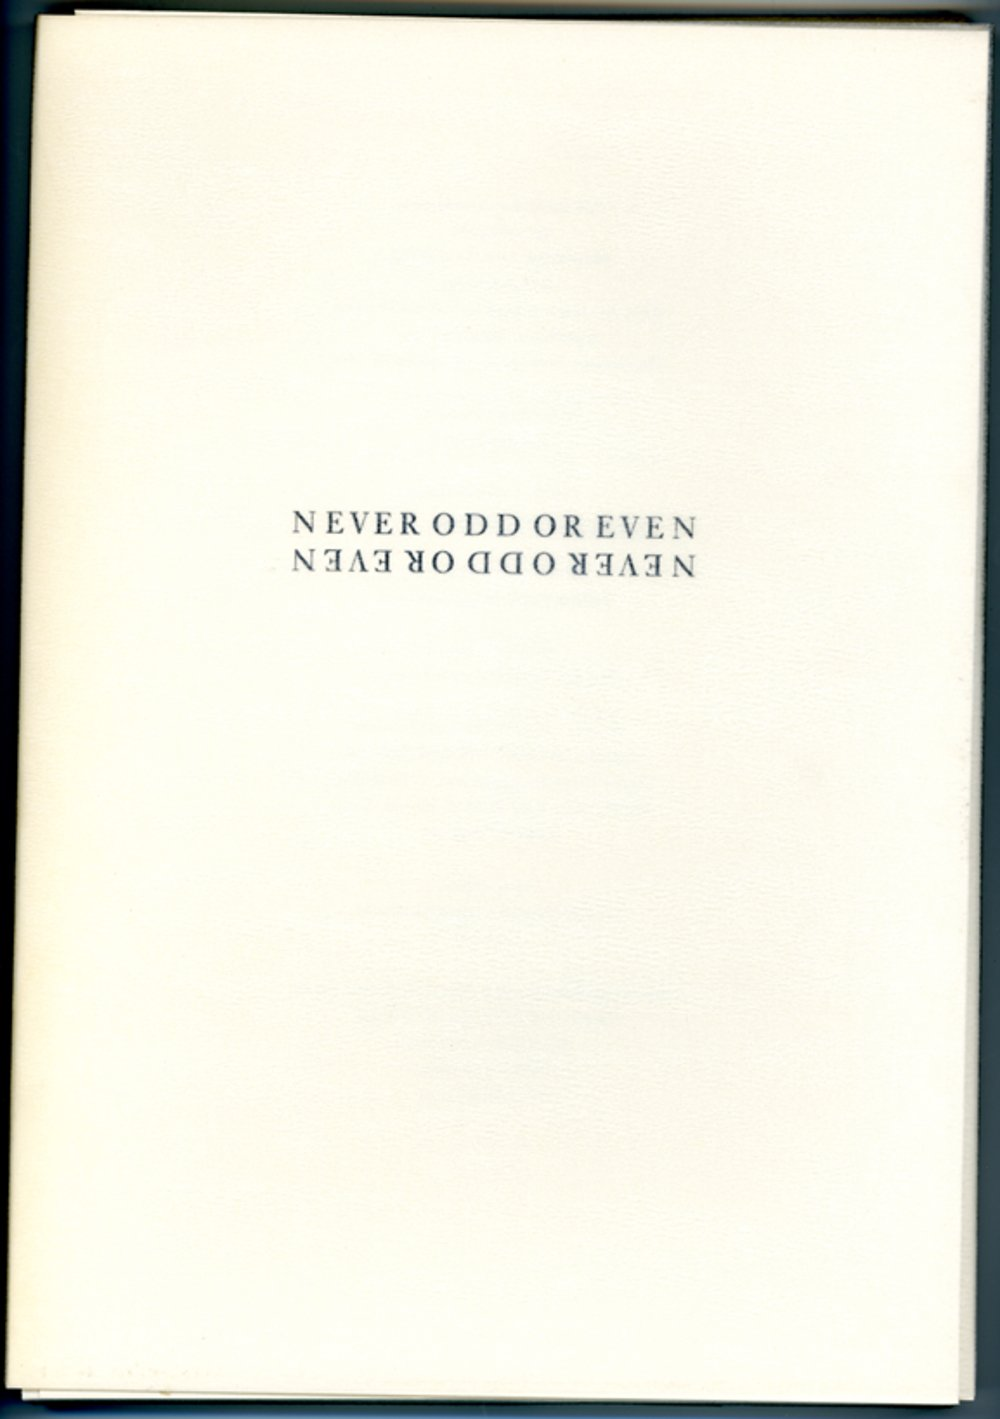 cover: NEVER ODD OR EVEN - Barbara Bloom